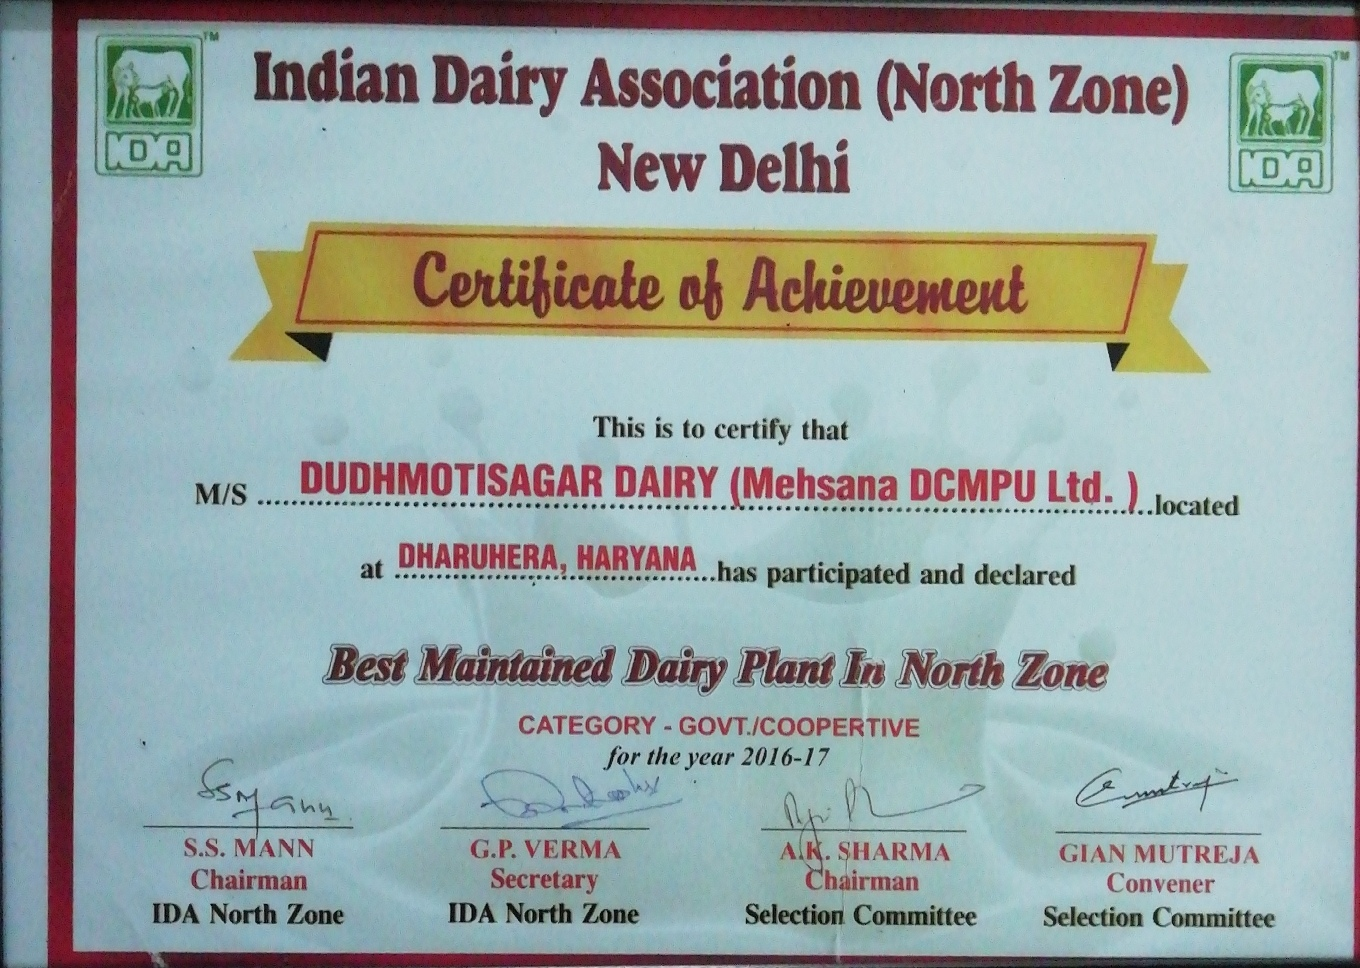 Certificate of Best Maintained Dairy Plant in the North Zone